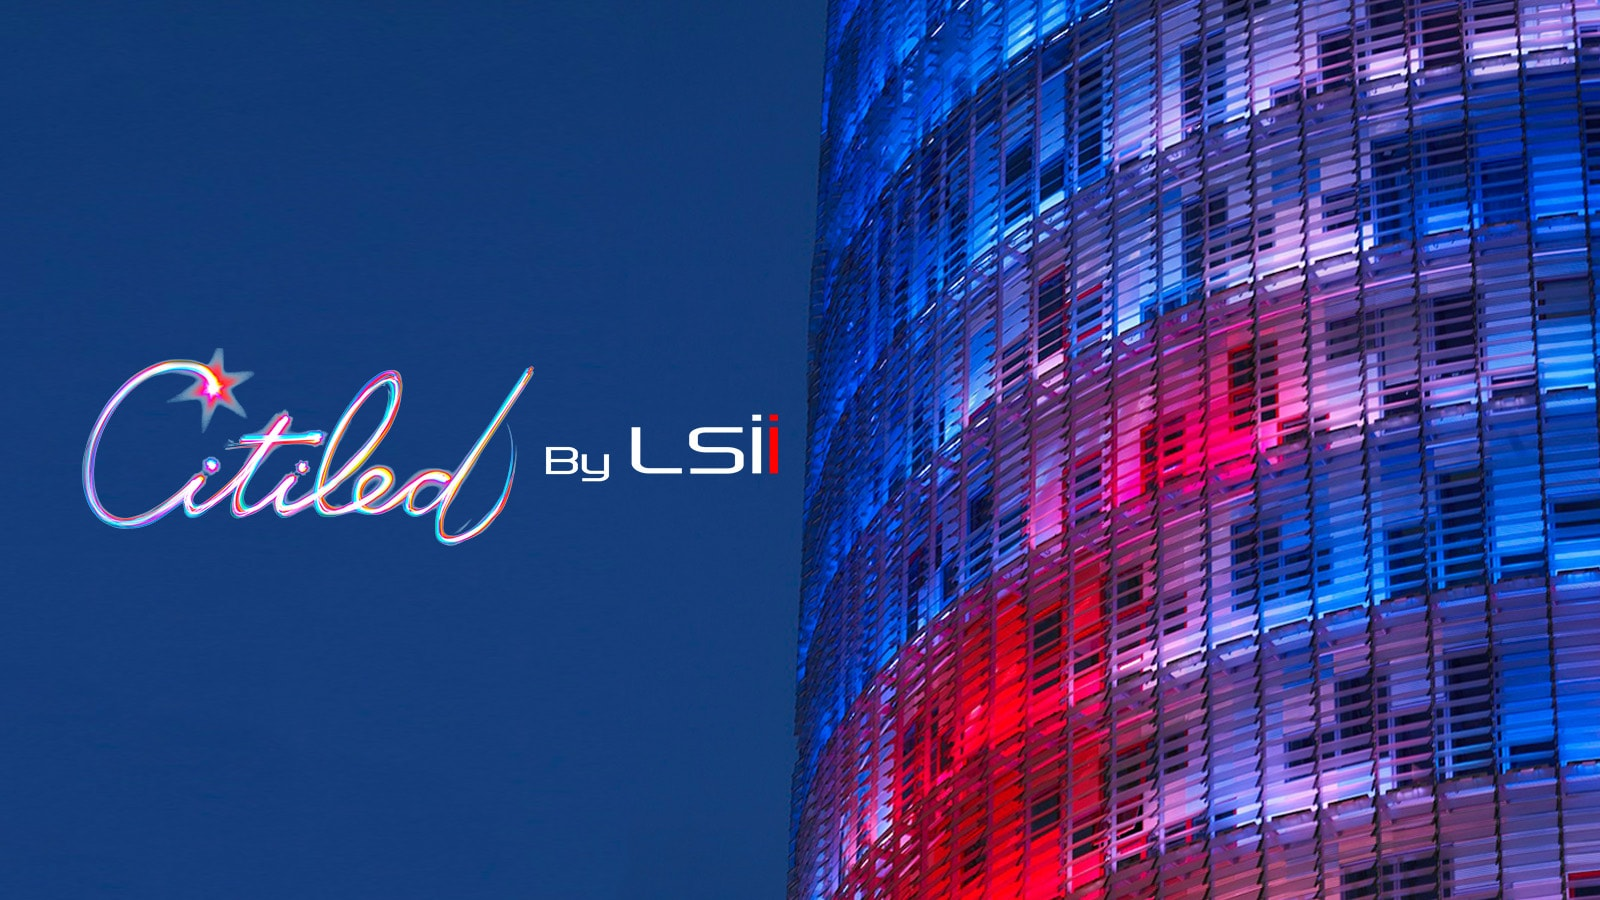 LSI INTERNATIONAL CORP. ACQUIRES ASSETS OF CITILED MEDIA FAÇADES